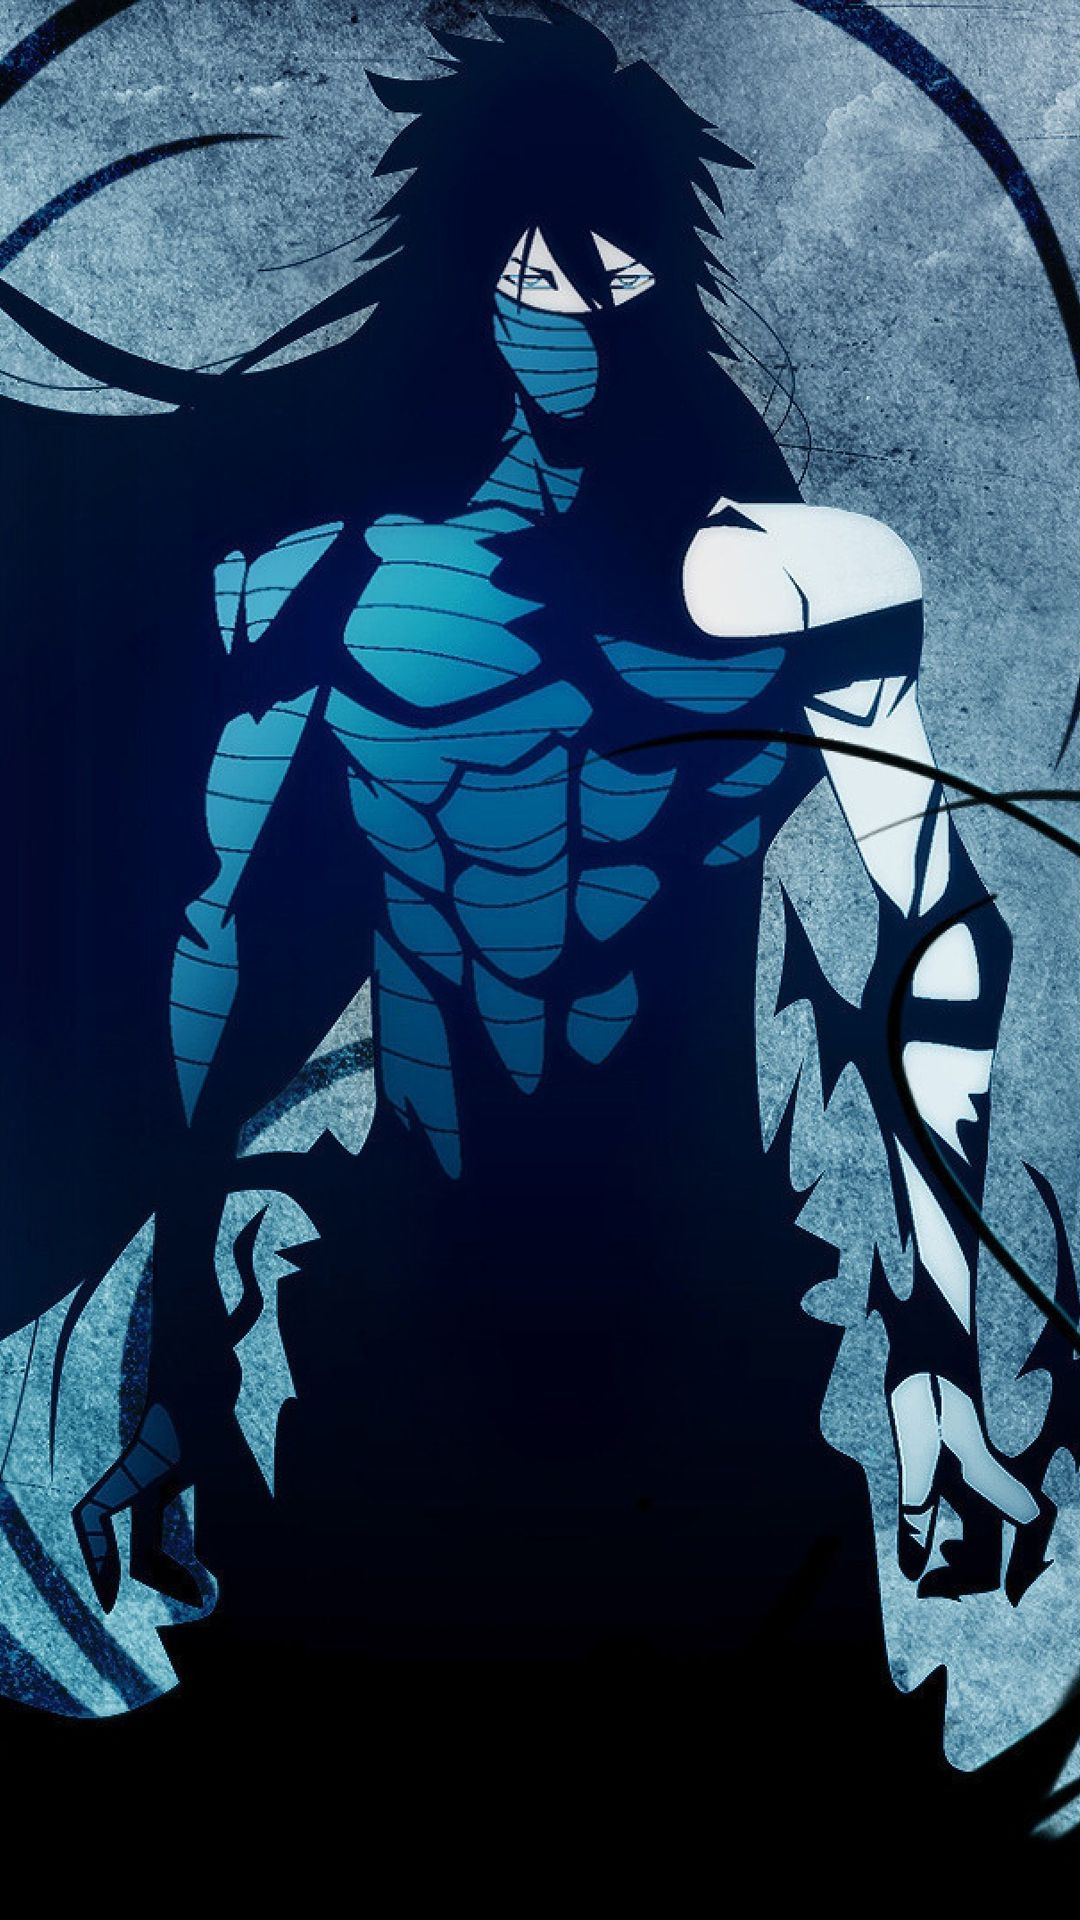 Hd Bleach Iphone Wallpaper Page 2 Of 3 Wallpaperwiki Bleach Anime Anime Wallpaper Bleach Fanart